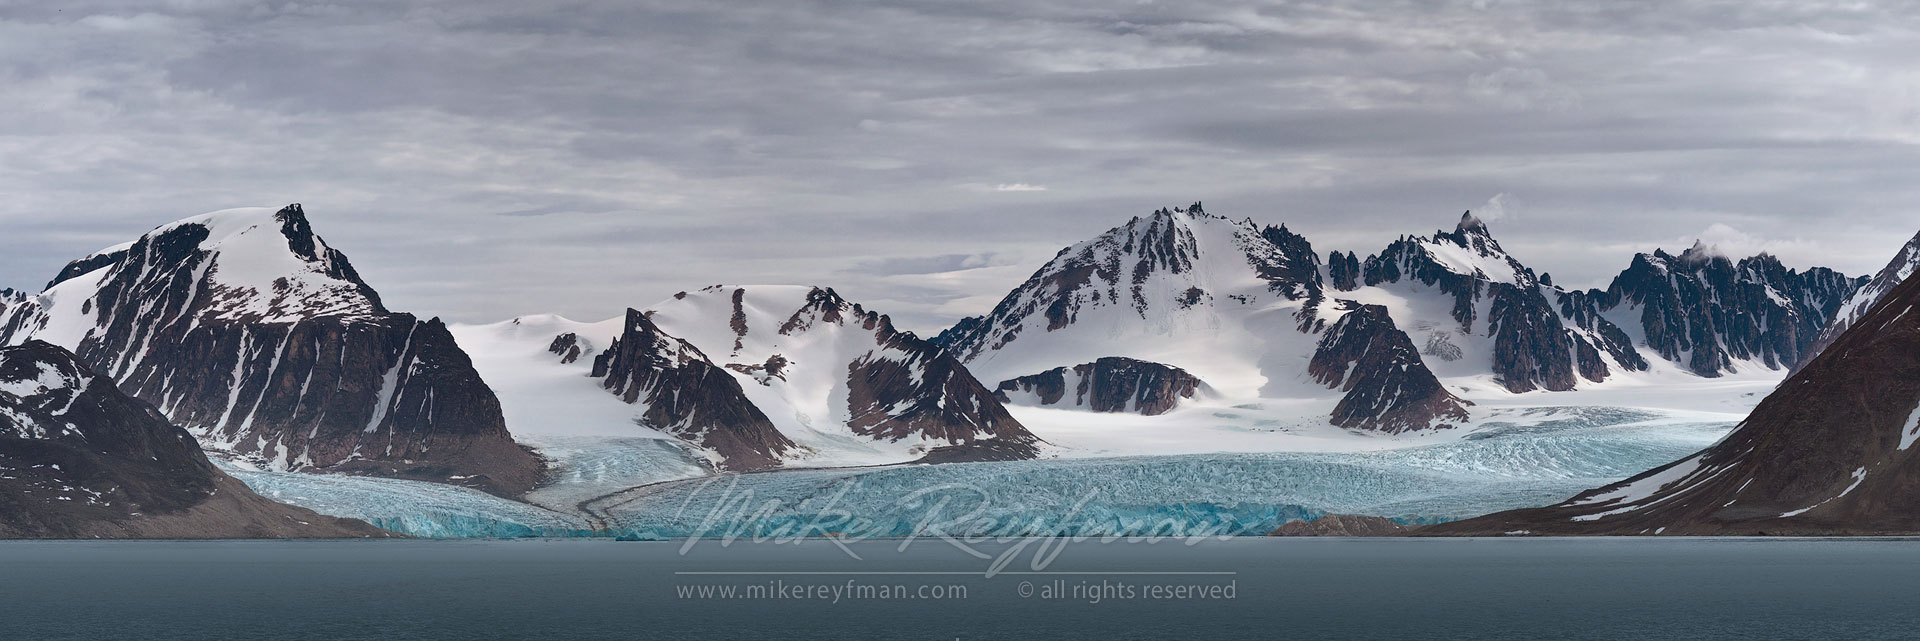 Mountains and Glaciers. Magdalenefjorden, Svalbard (Spitsbergen) Archipelago, Norway. - Arctic-Landscape-Svalbard-Spitsbergen-Norway - Mike Reyfman Photography